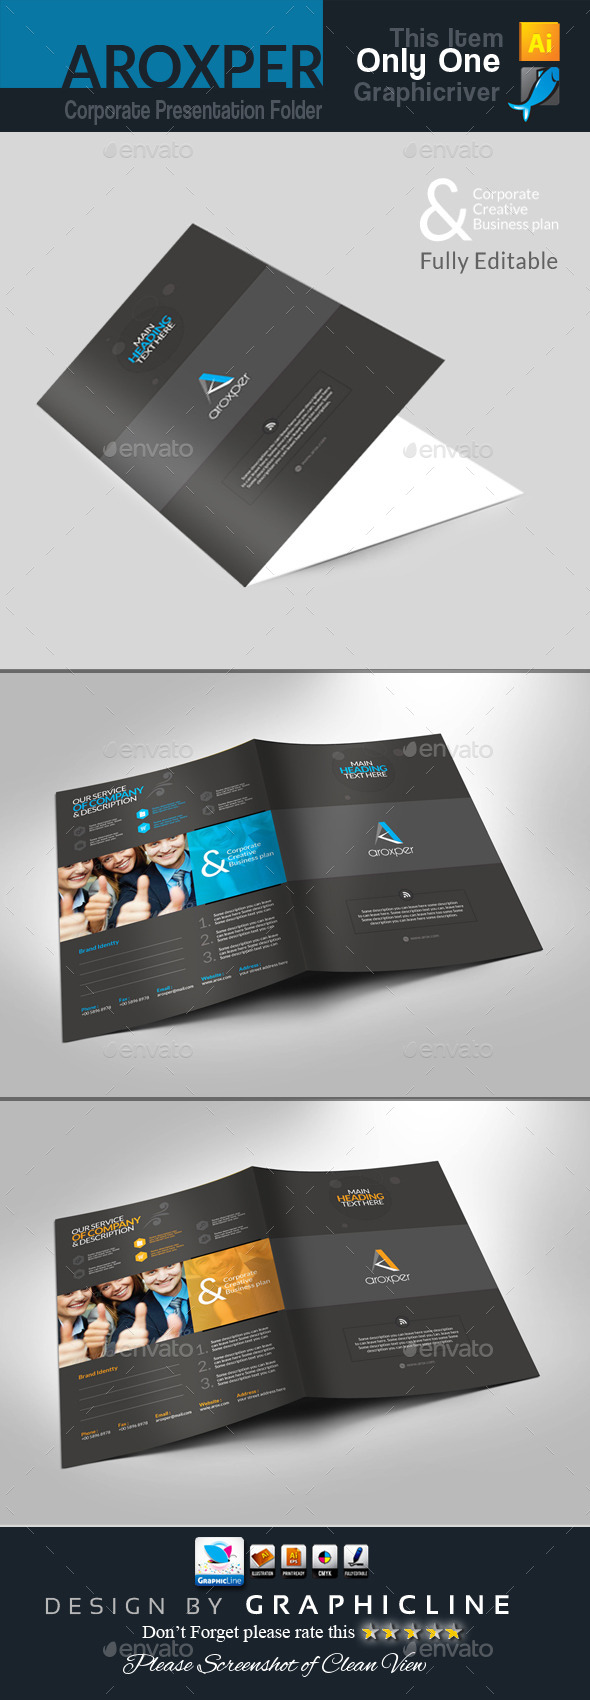 GraphicRiver Aroxper Corporate Presentation Folder 8888632